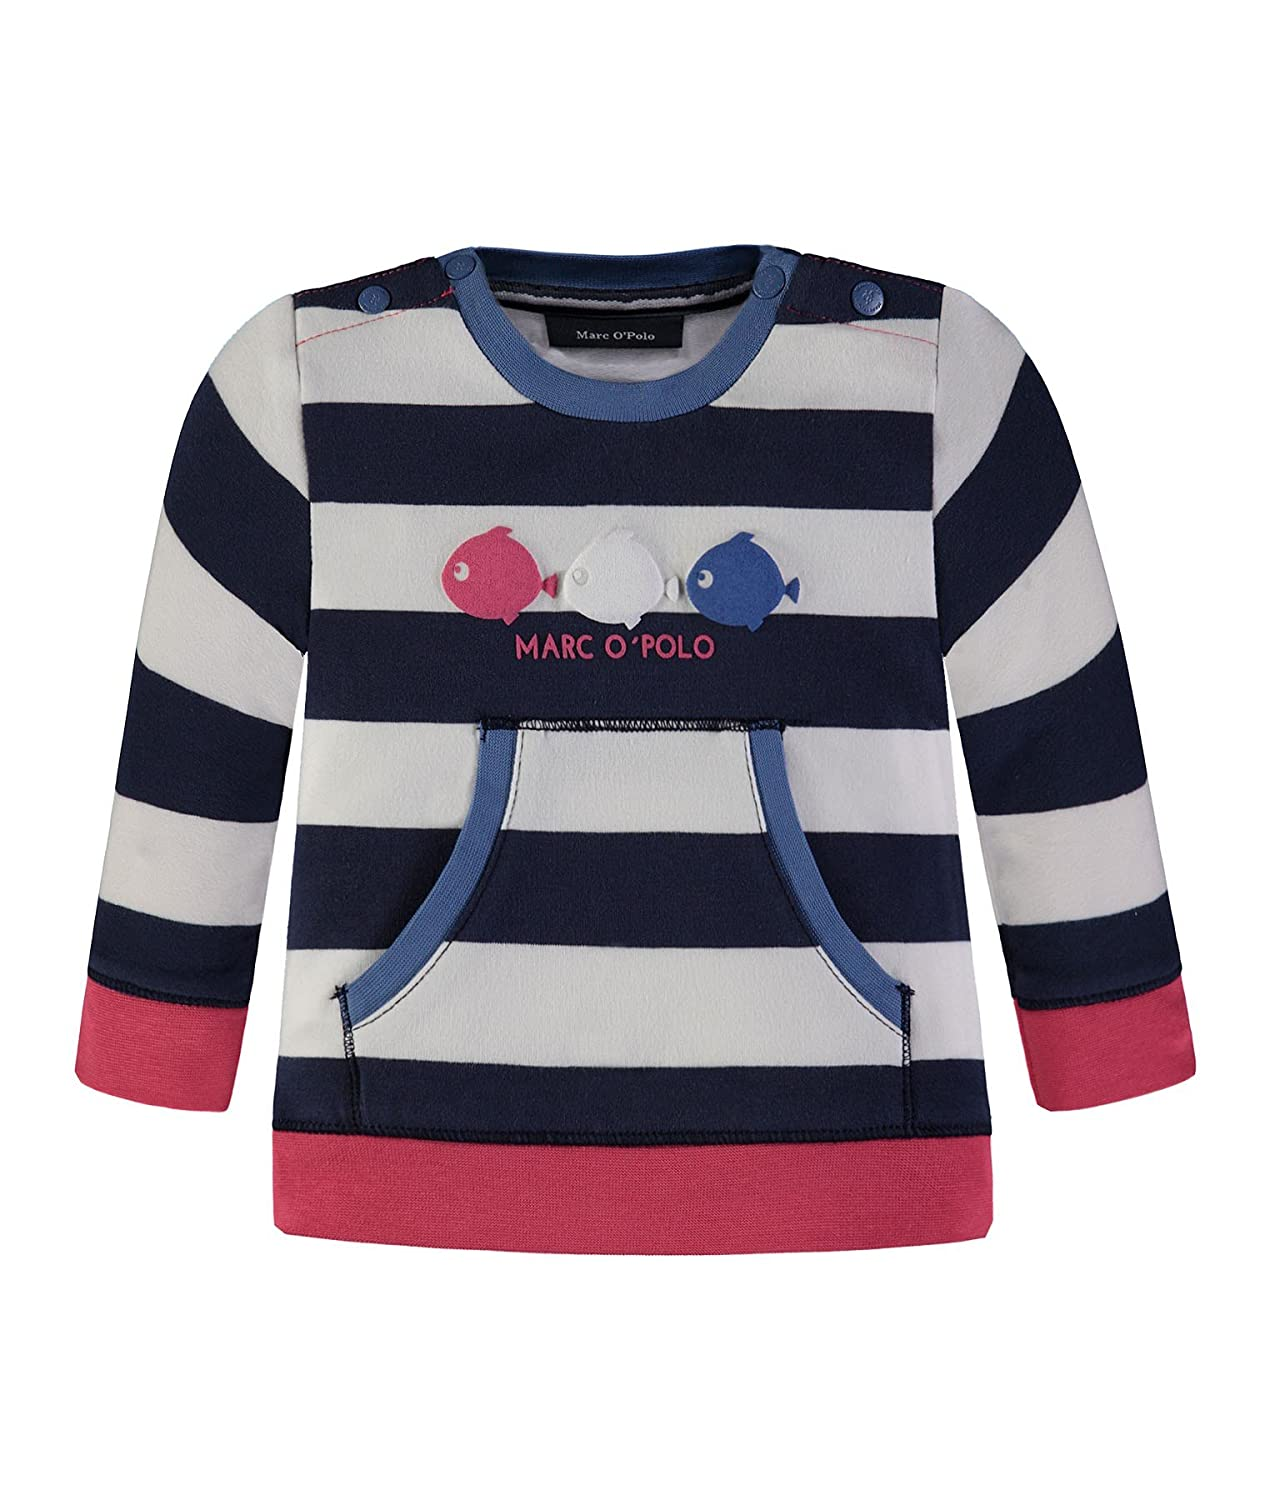 Marc O'Polo Boy's Sweatshirt Marc O'Polo 1812503